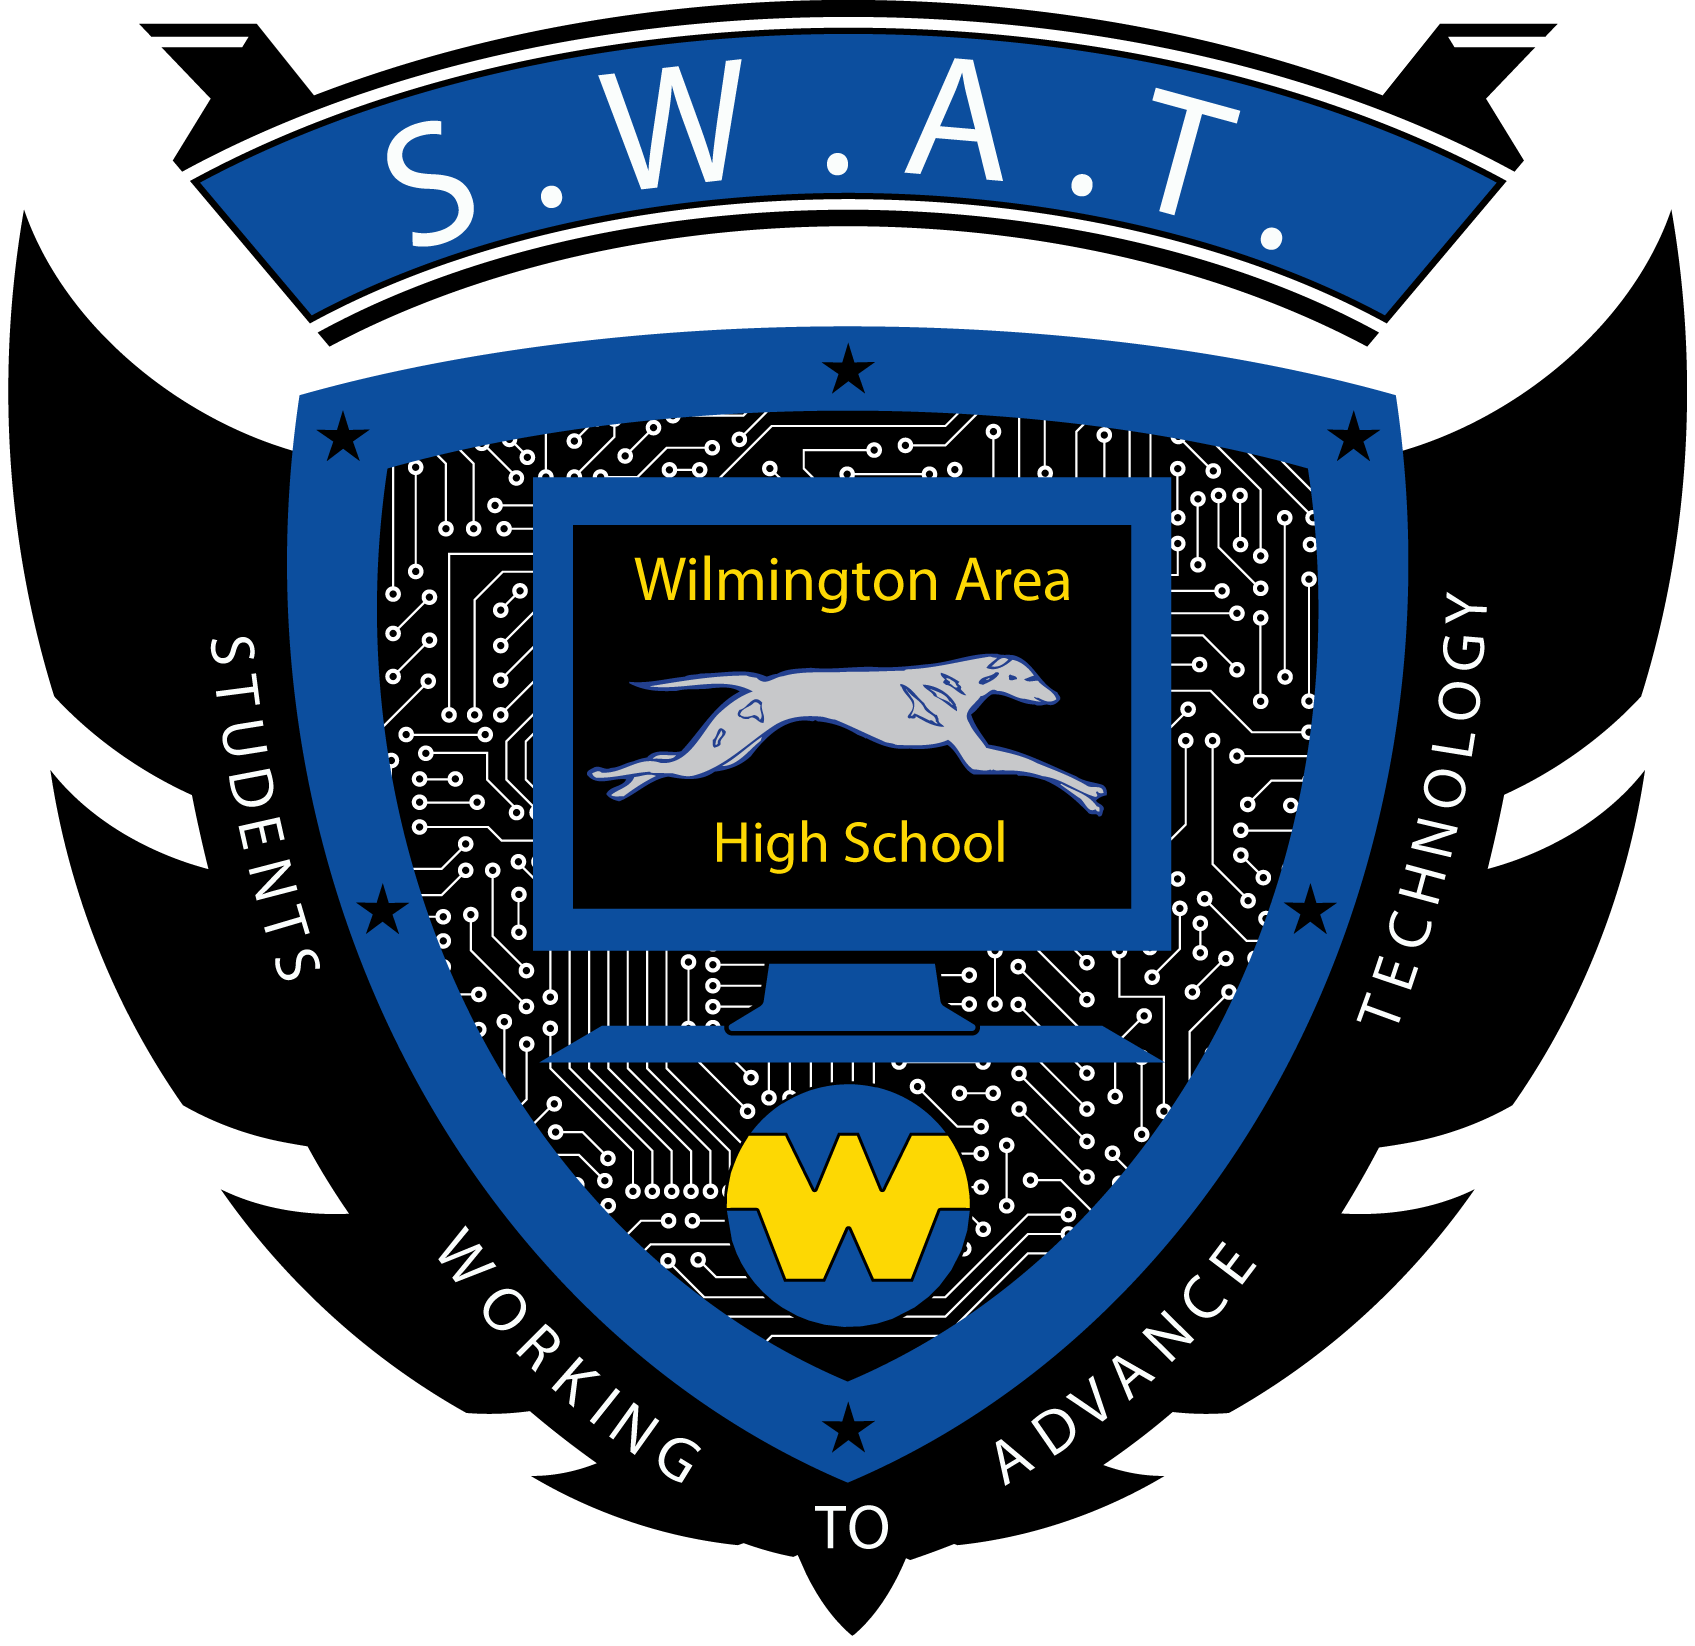 1555513181-swat_logo_revised_2